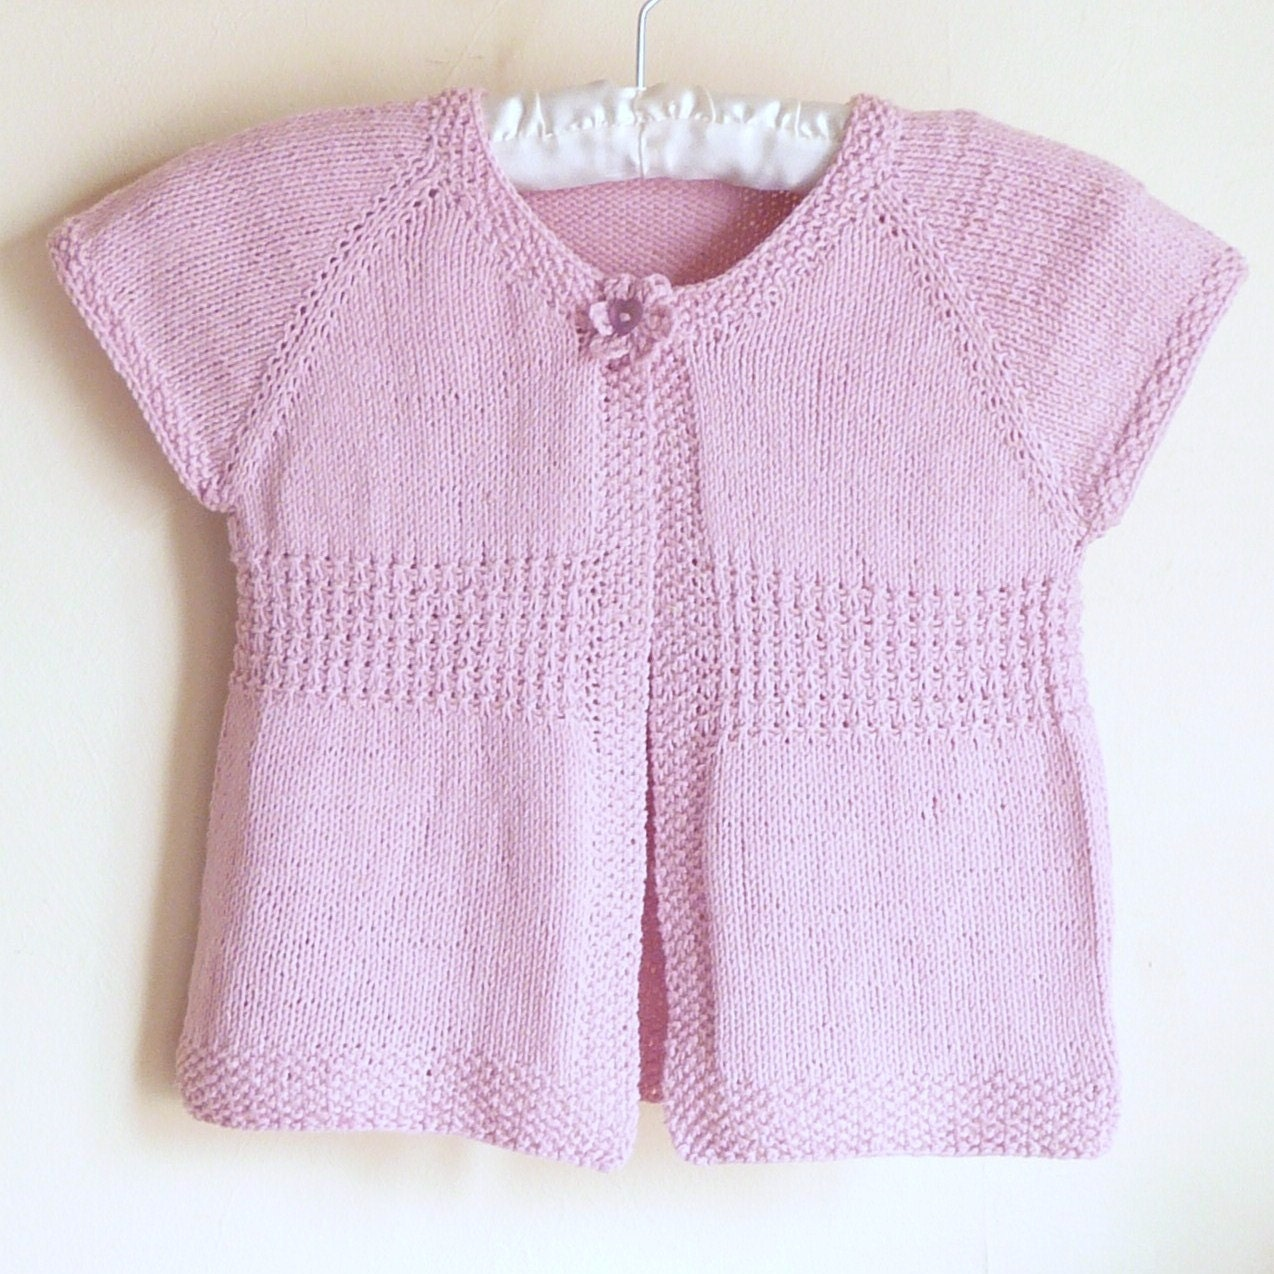 Knitting Sweaters For Girls : Knitting pattern cardigan sweater emma a seamless top down